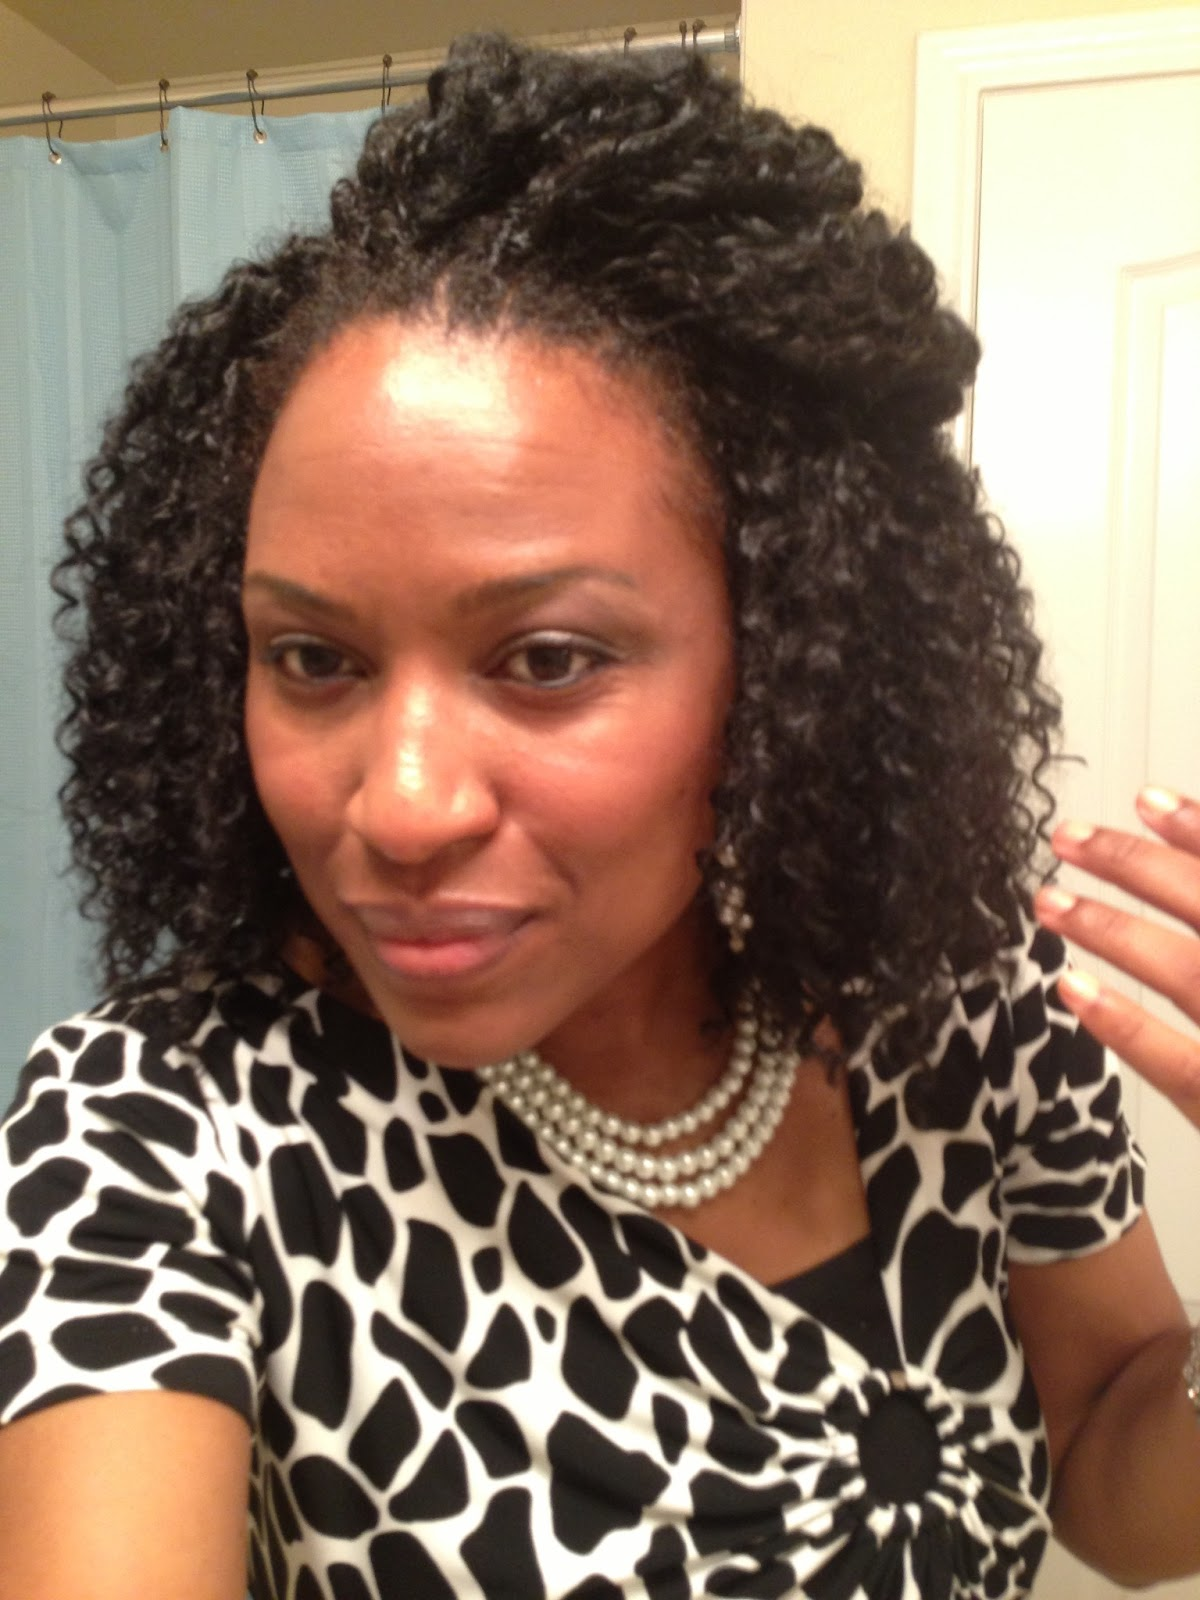 Crochet Hair Greensboro : HAIR Get Maximum Wear out of your Crochet Braids My 8 week Update